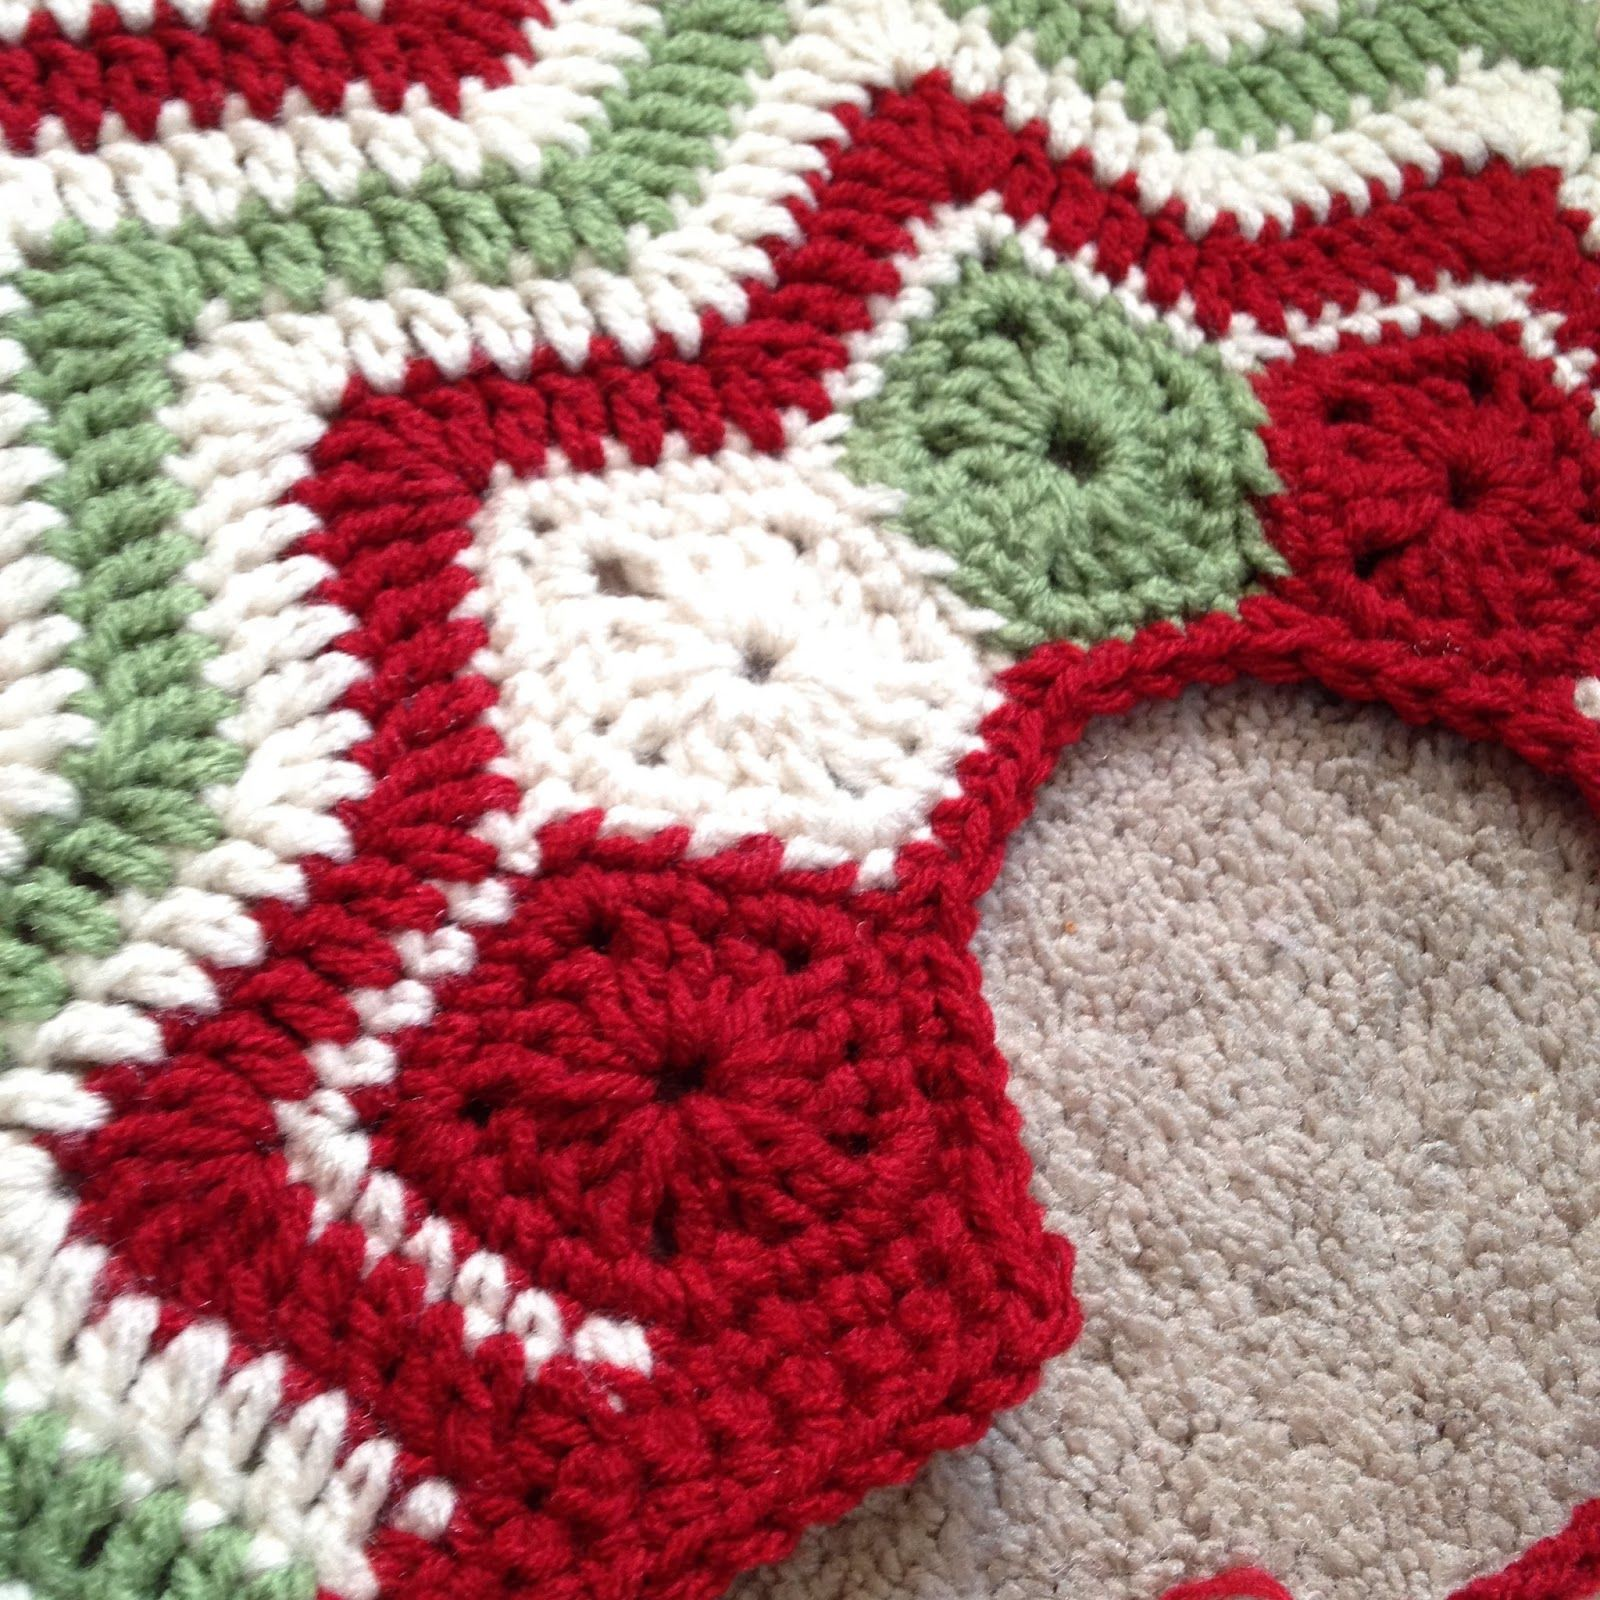 Christmas Tree Skirt Knitting Pattern : Christmas Tree Skirt Receptions, I will have and Christmas tree skirts